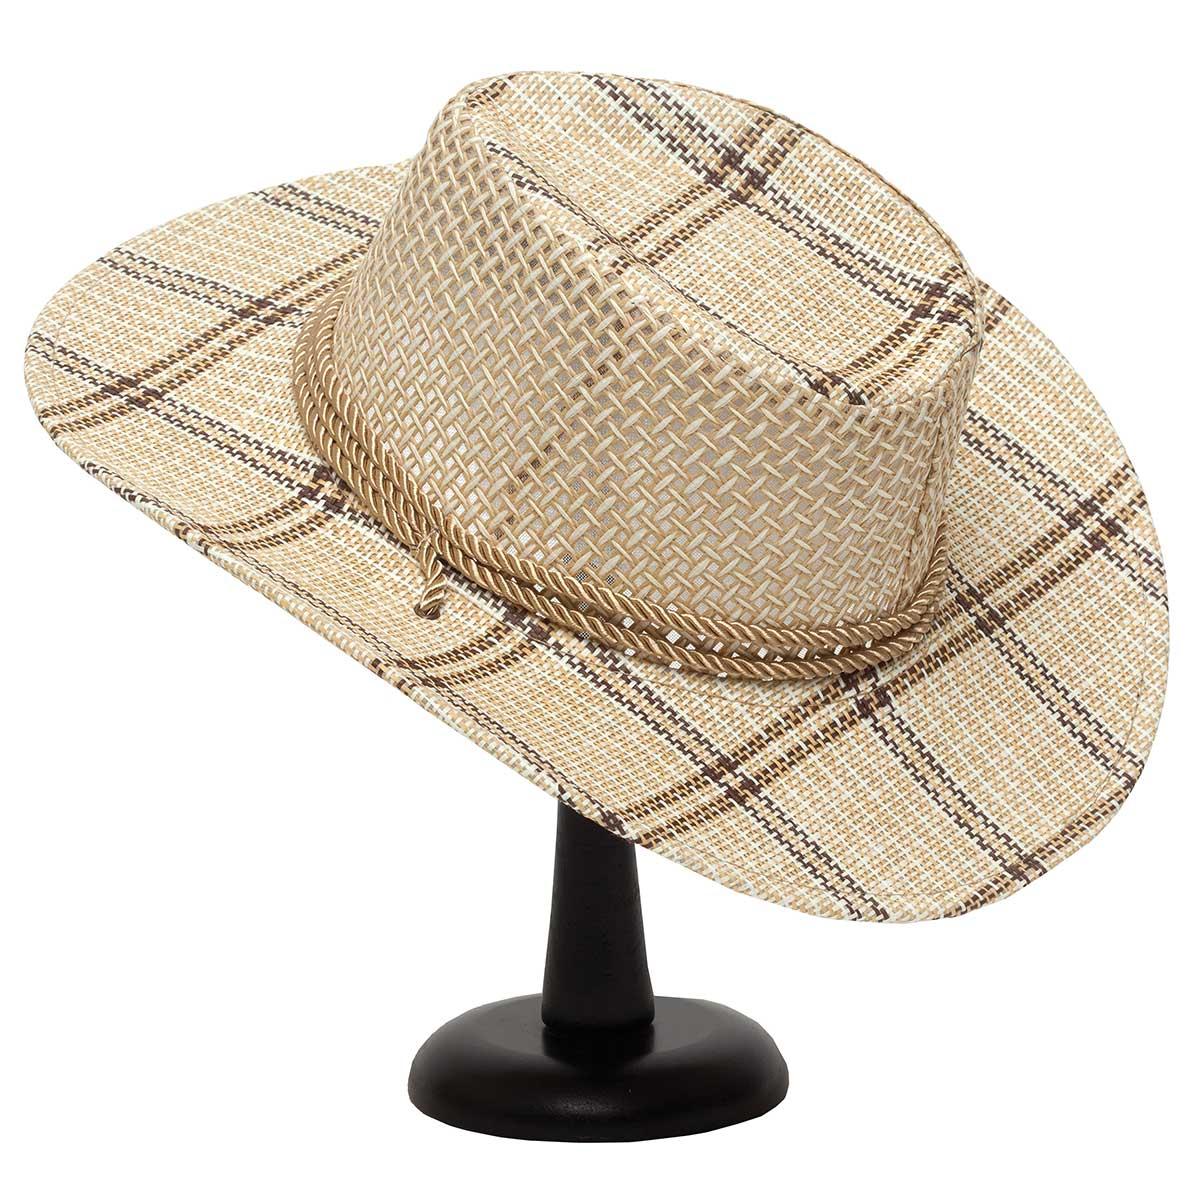 Tan Mesh Crown Hat with Rope Trim and Plaid Brim 50sp